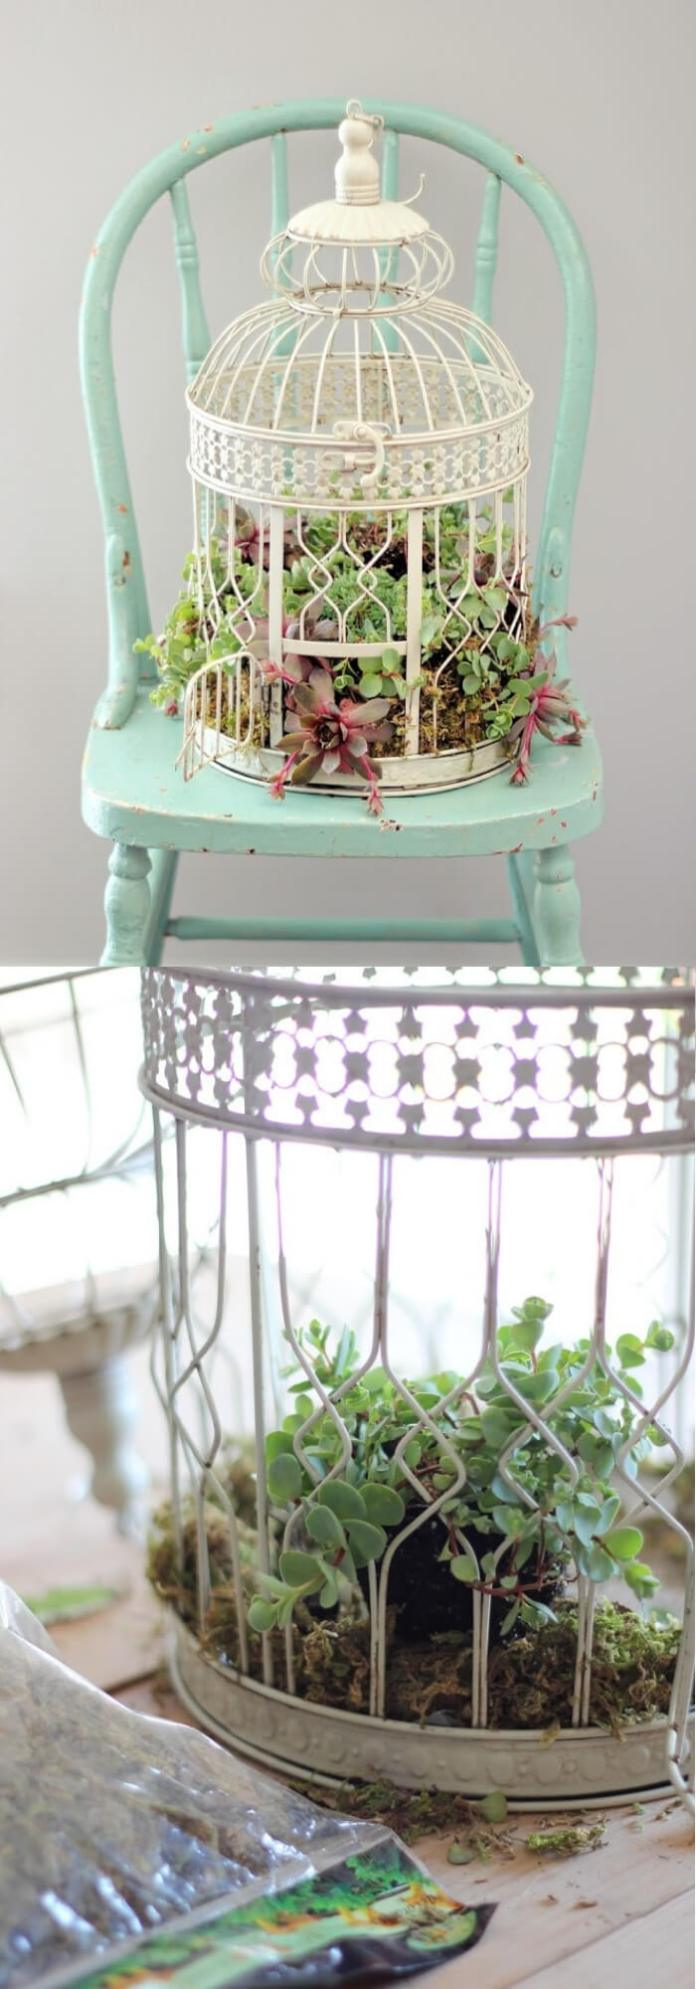 Plant succulents in a birdcage